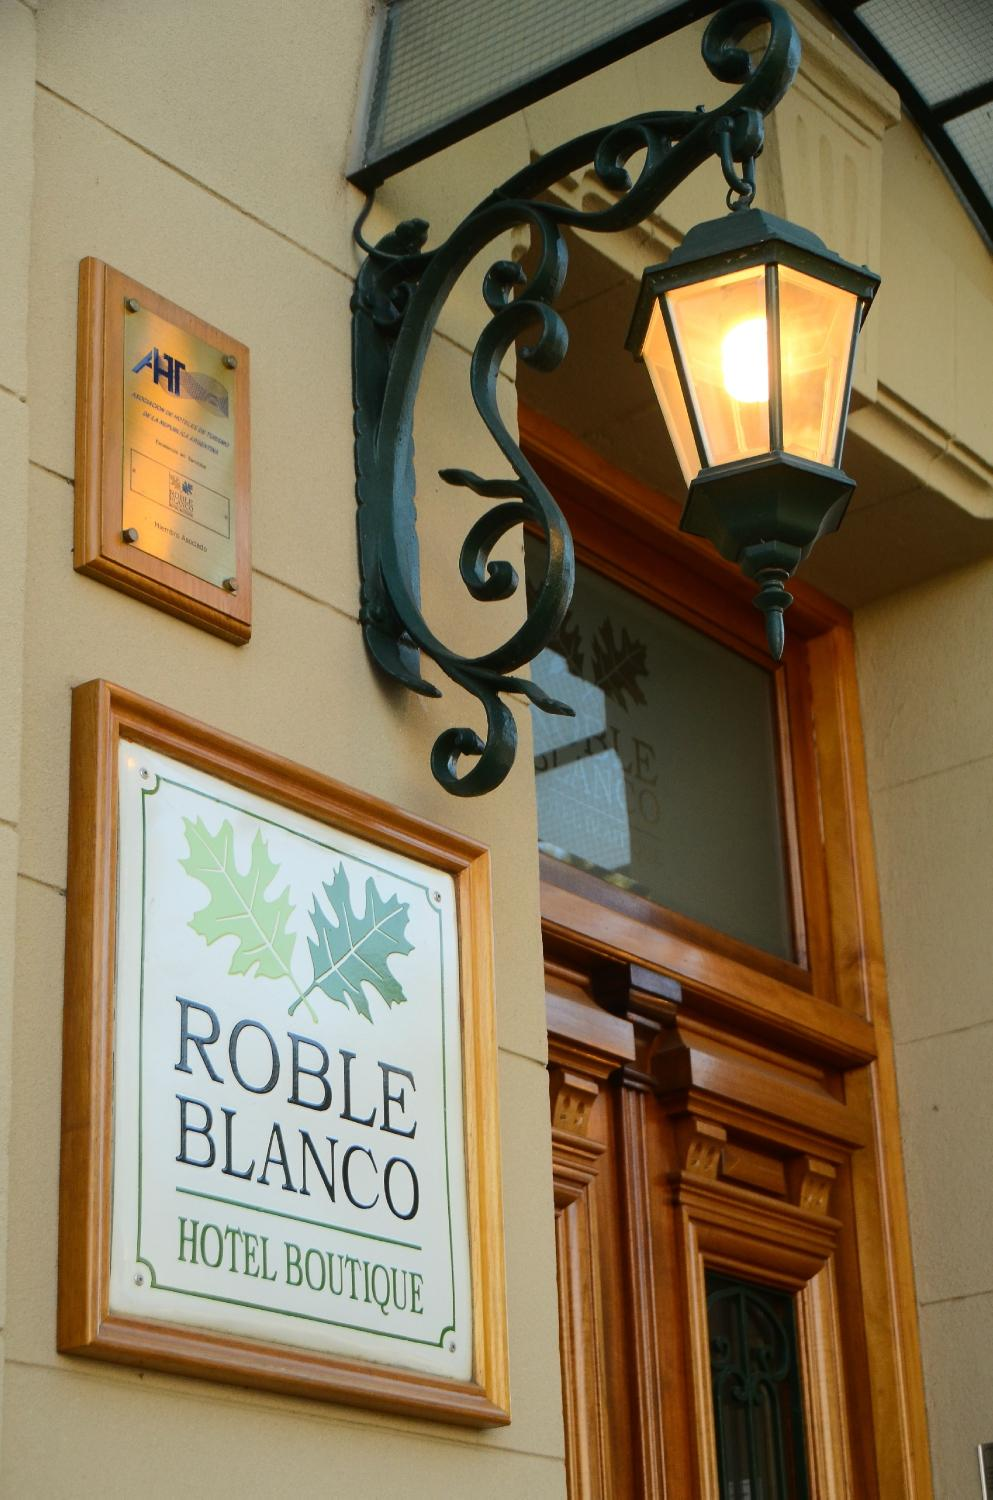 Hotel Boutique Roble Blanco